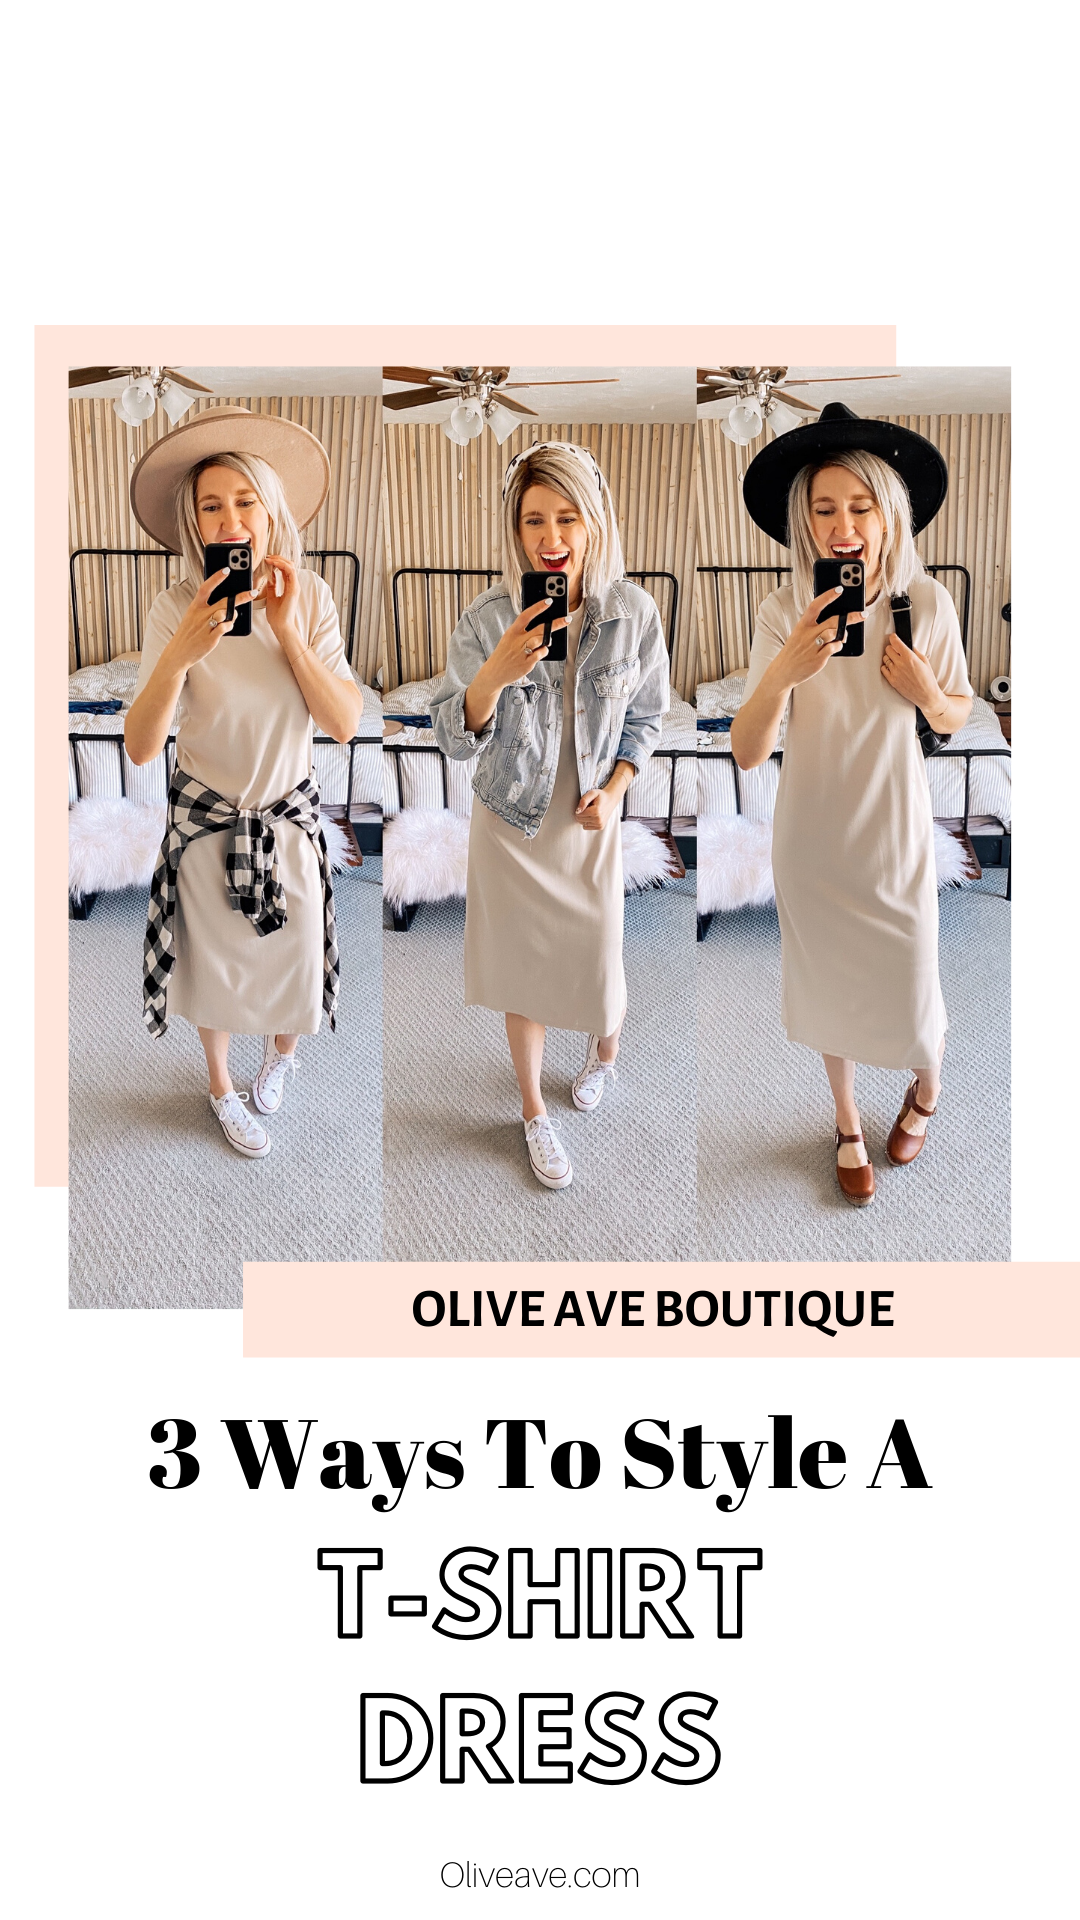 3 Ways to Style A T-Shirt Dress